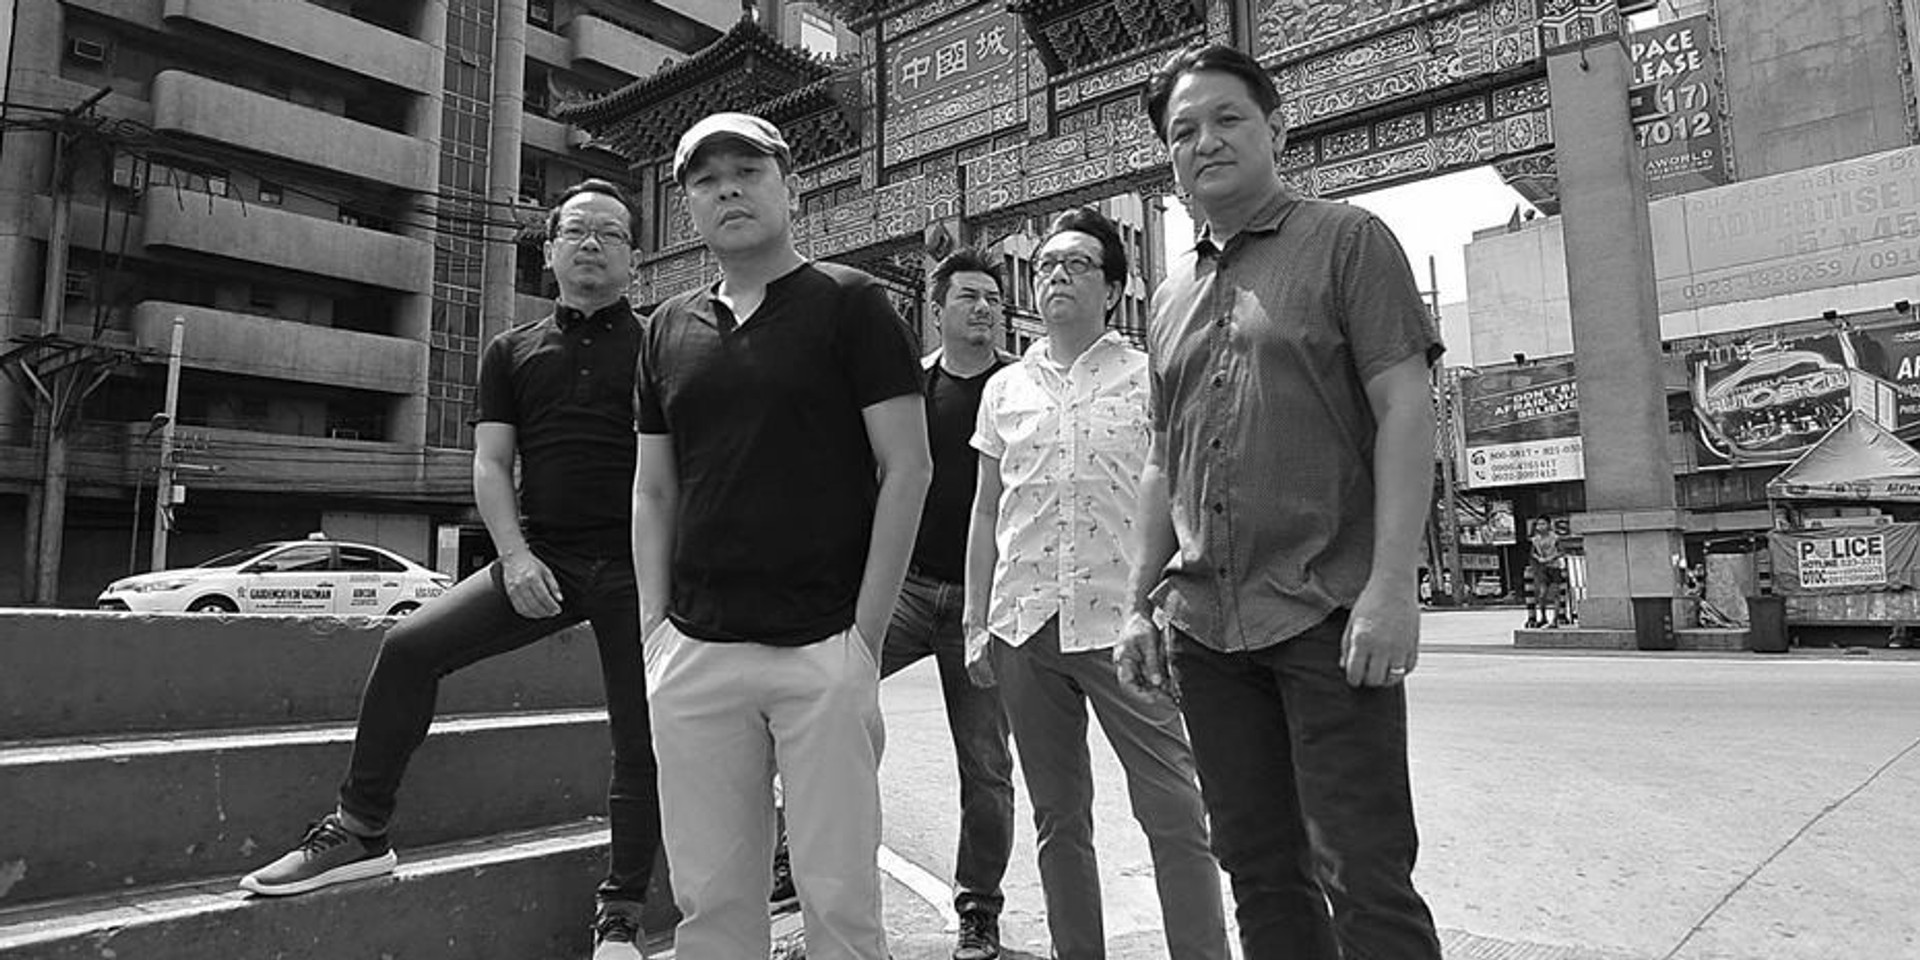 The Dawn to hold major concert Ascendant in July